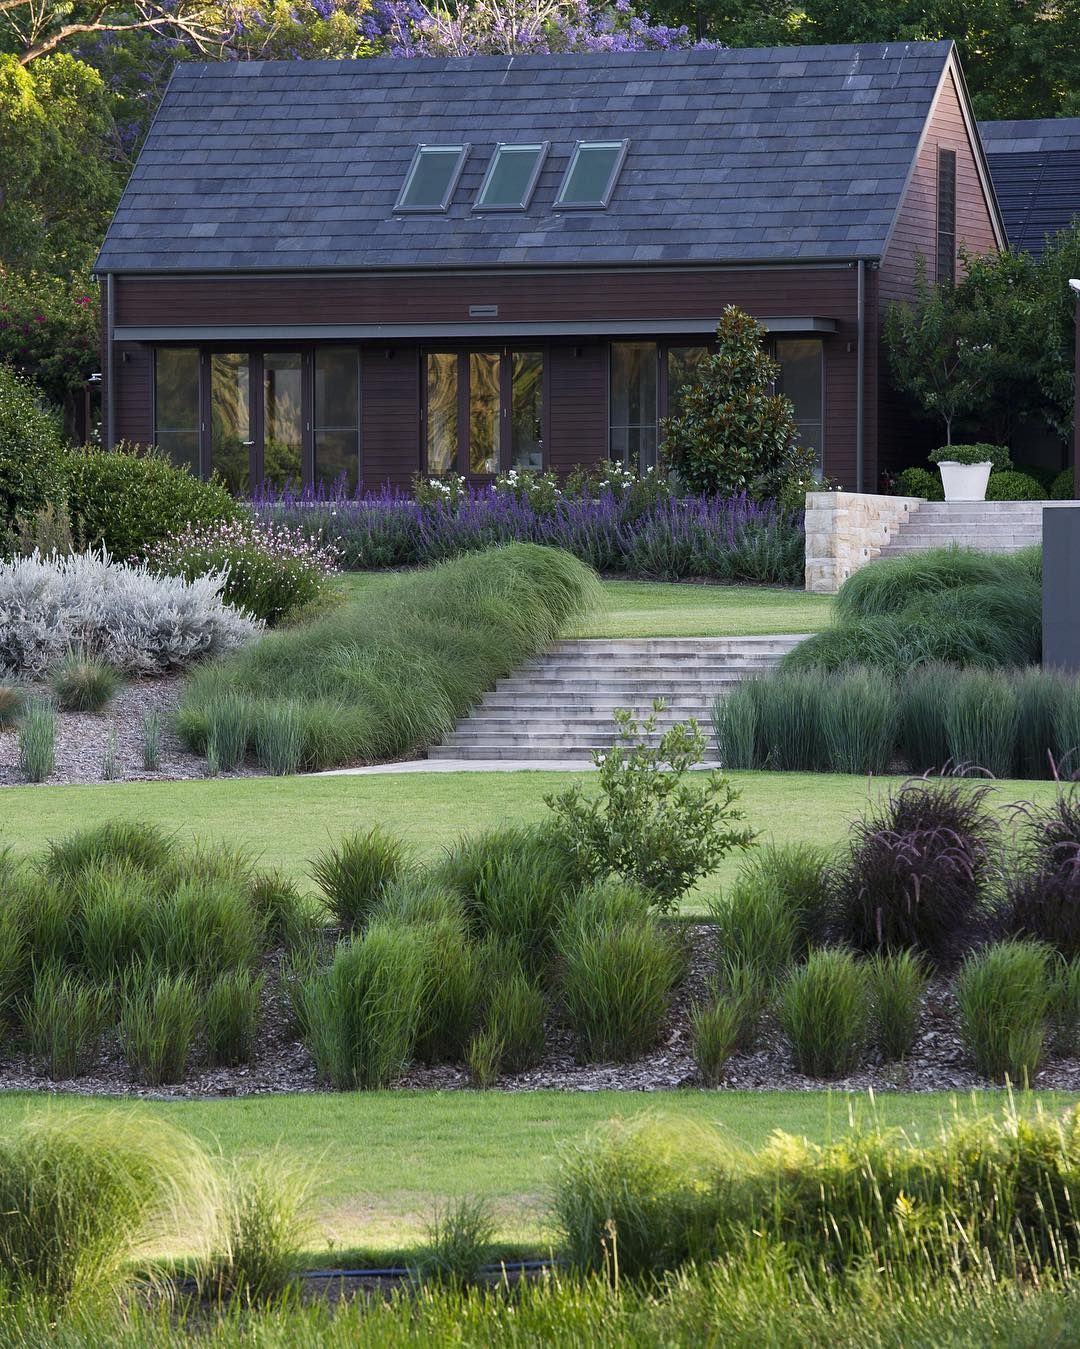 7 Affordable Landscaping Ideas For Under 1 000: Pin By Anita Schlabach On Home